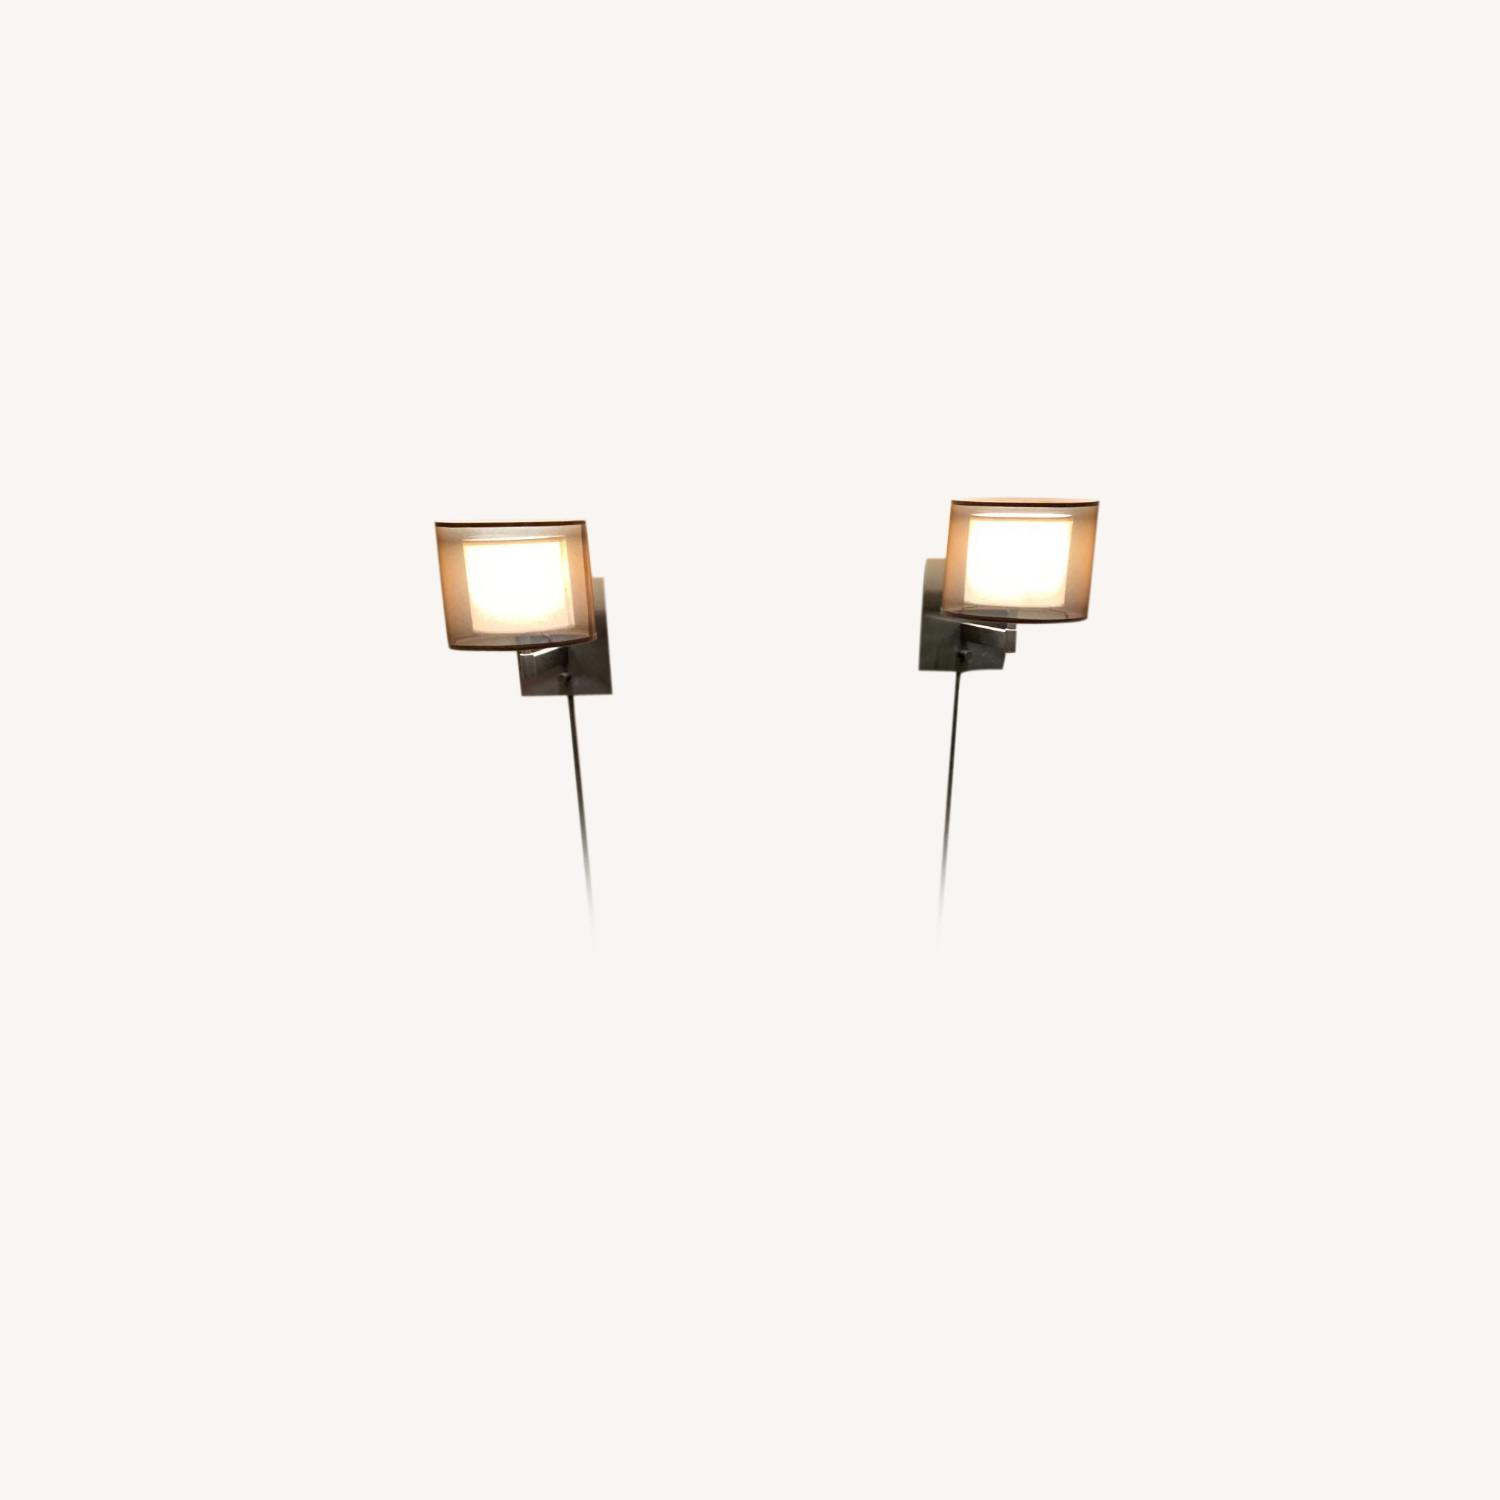 Lowe's 2 Wall Sconces - image-3